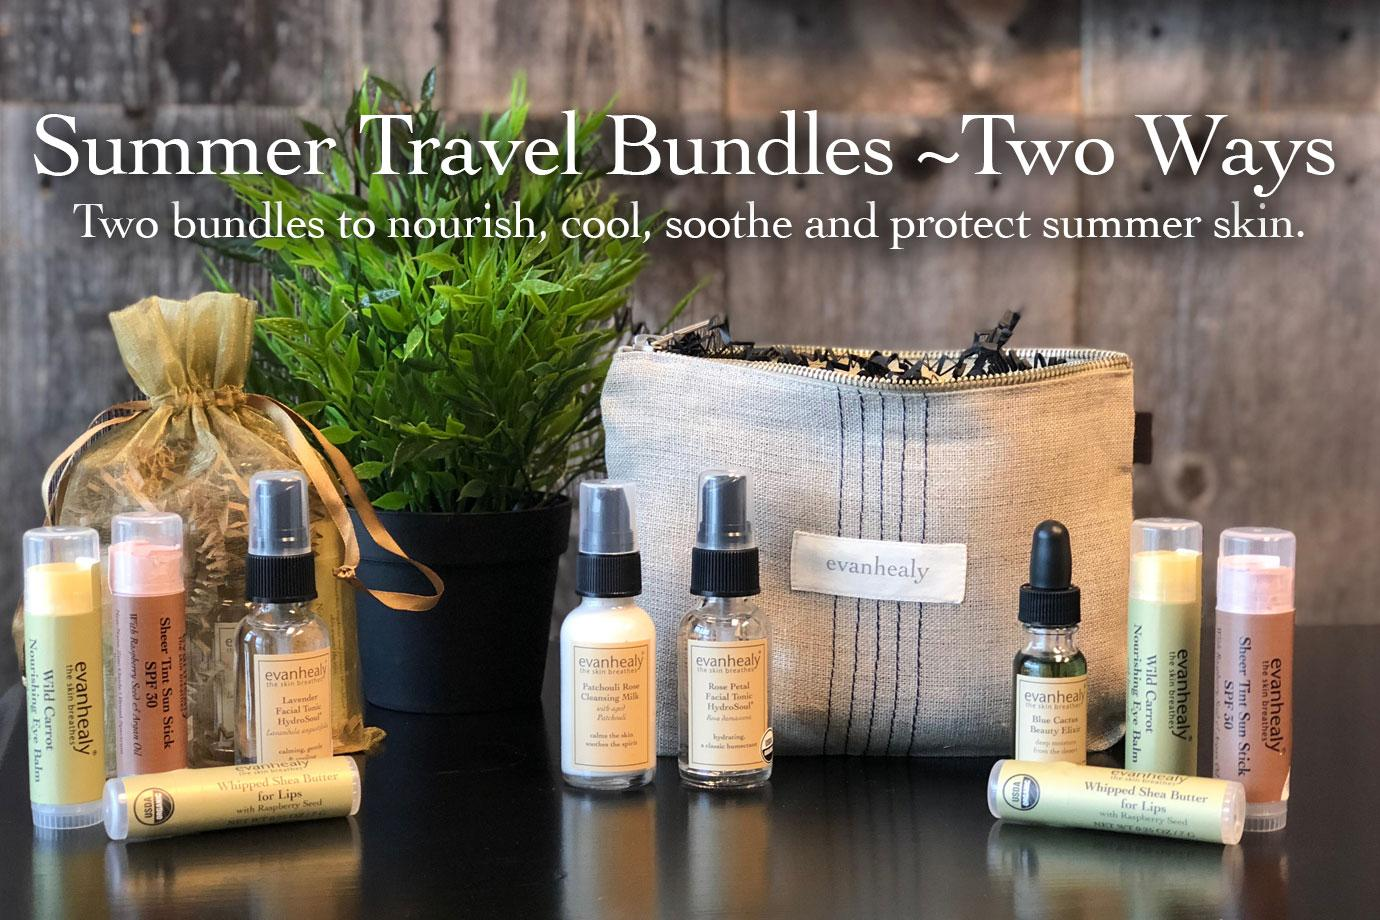 Summer Travel Bundles